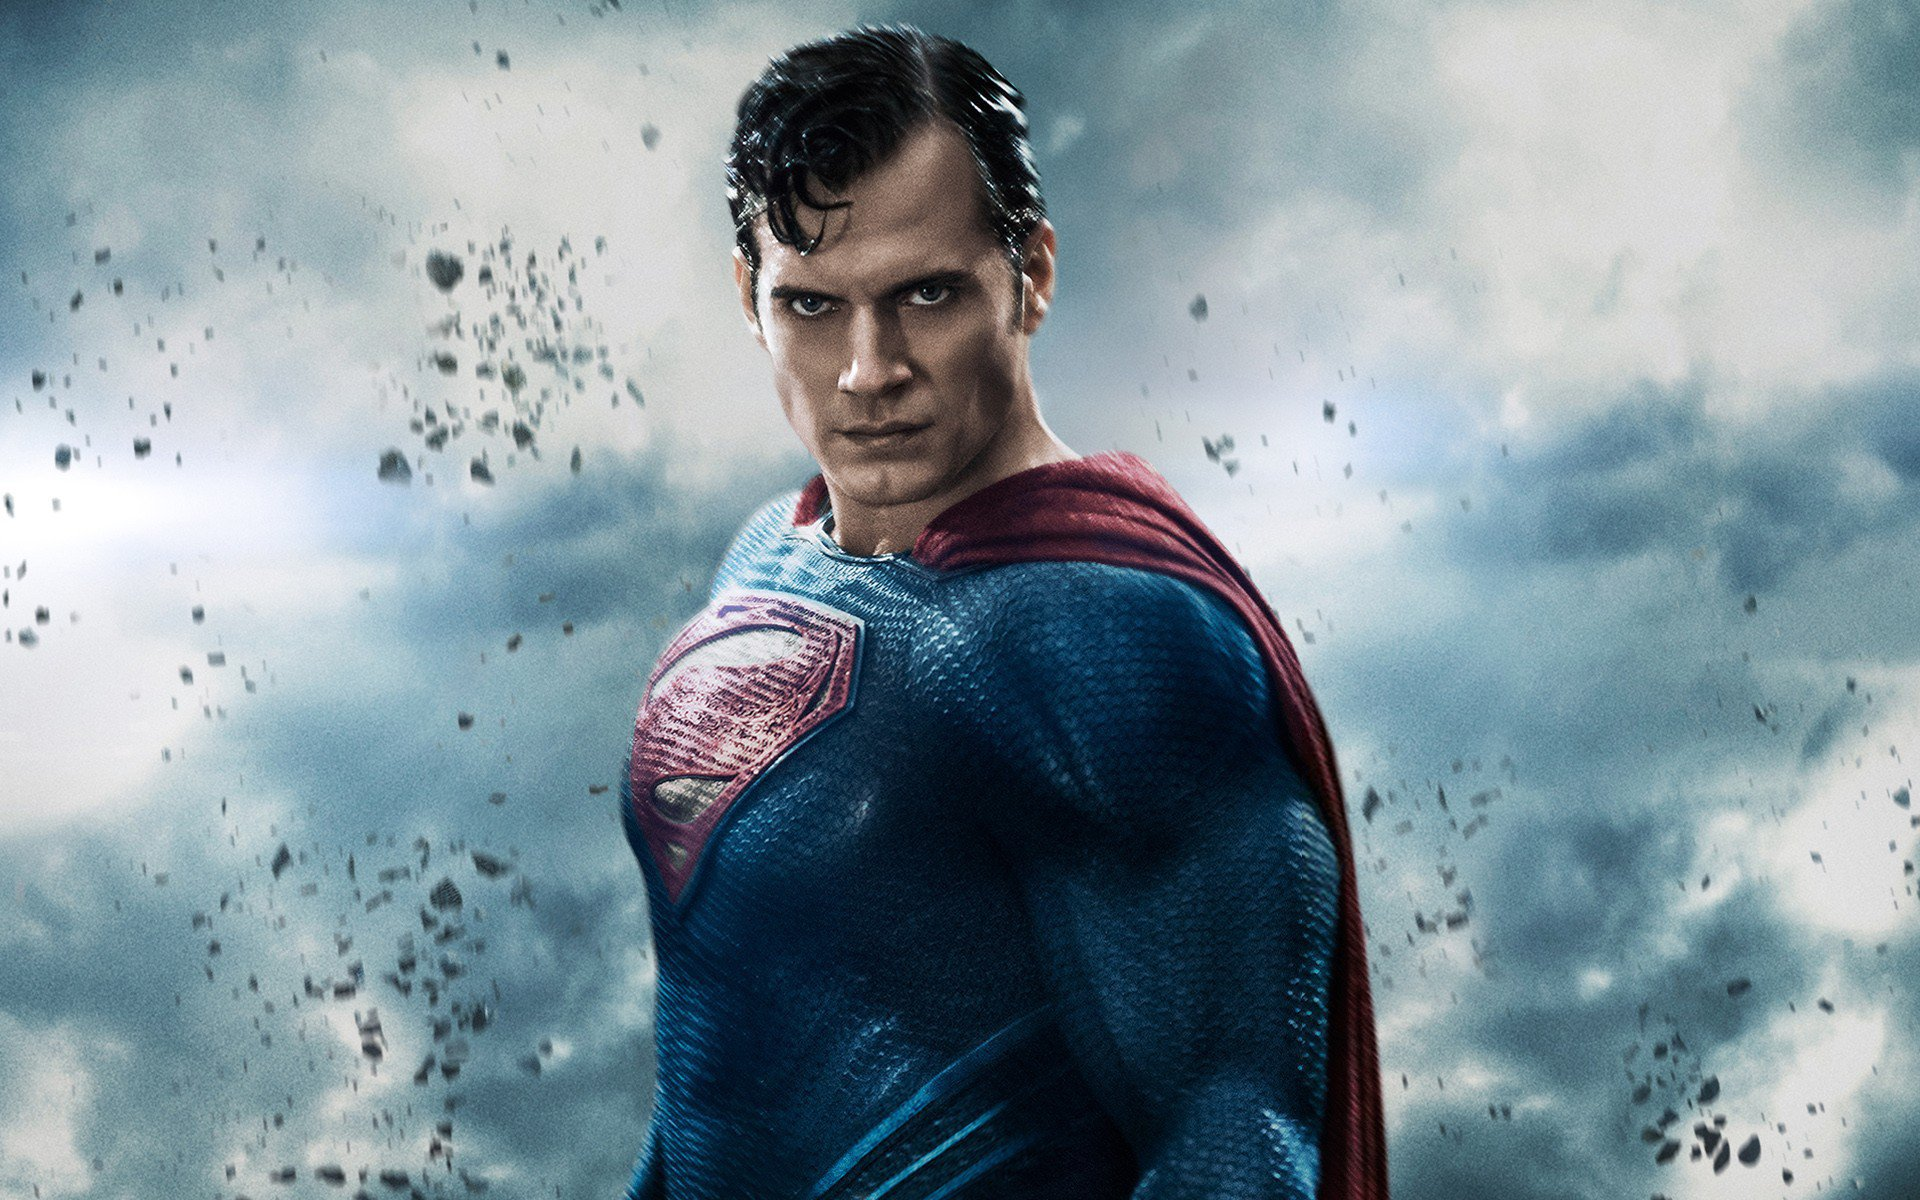 Henry Cavill Wallpapers Images Photos Pictures Backgrounds